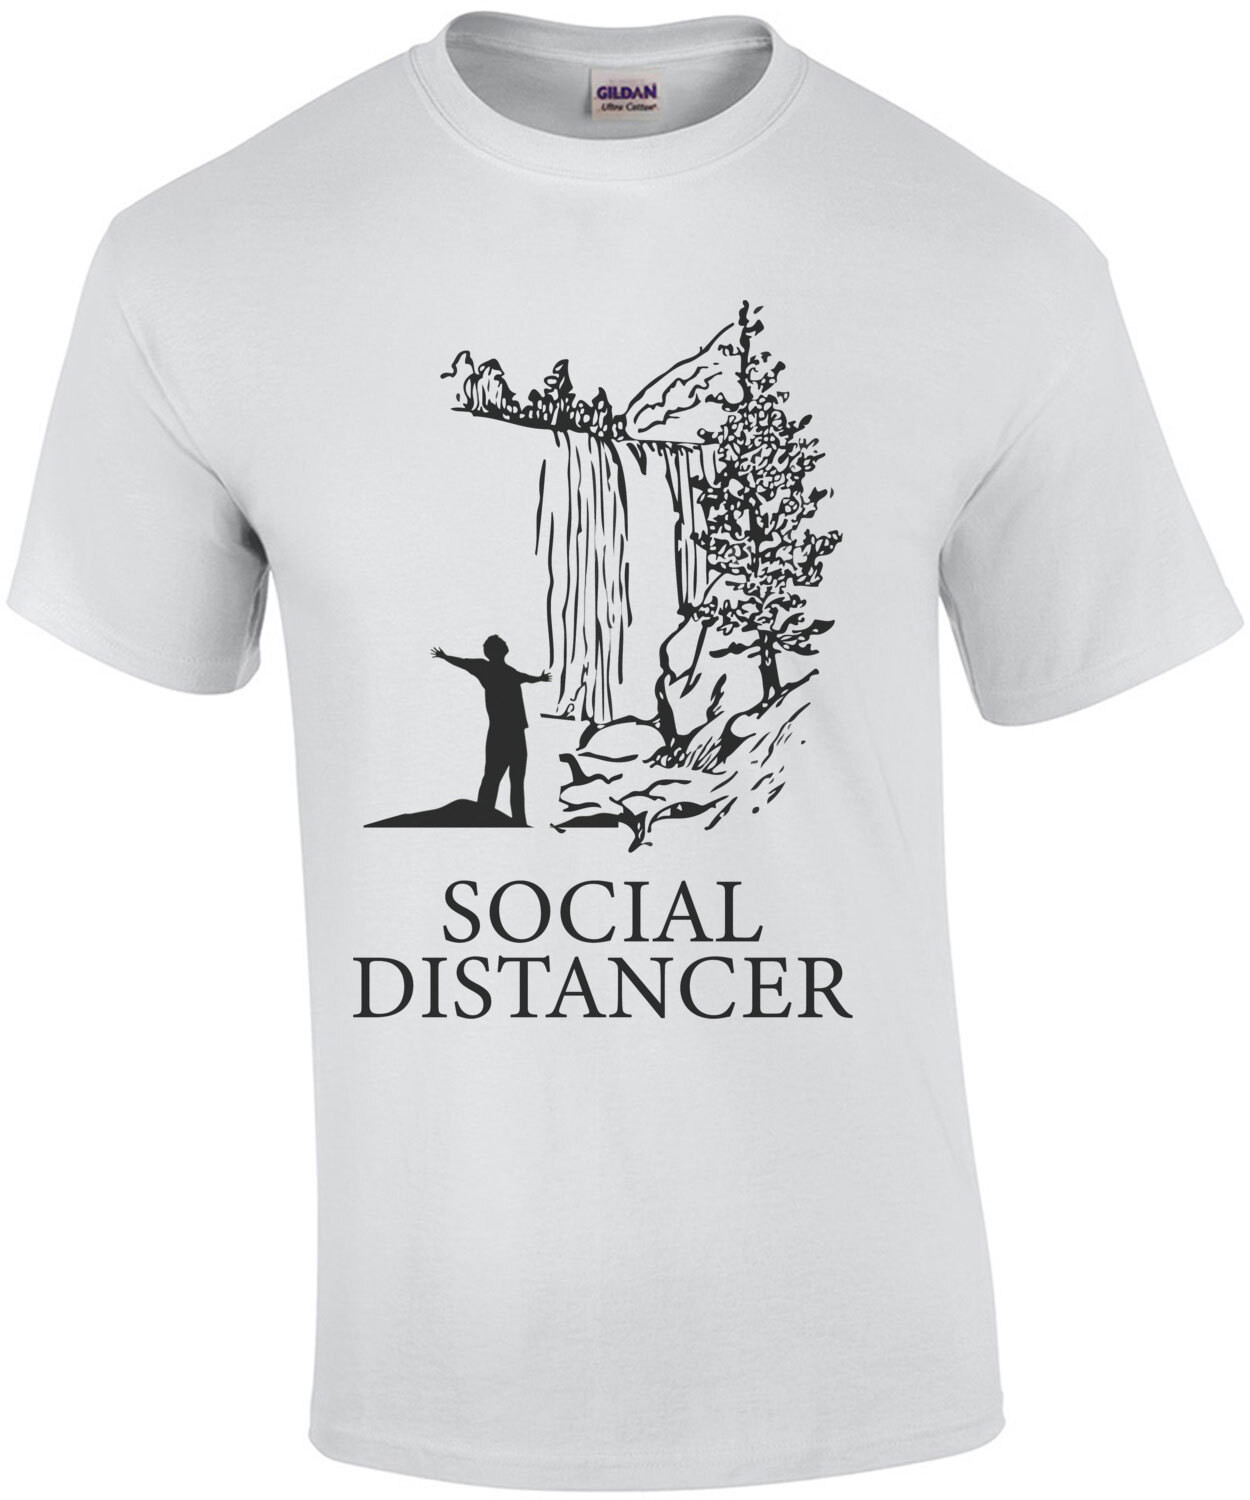 Social Distancer - Funny Camping T-Shirt